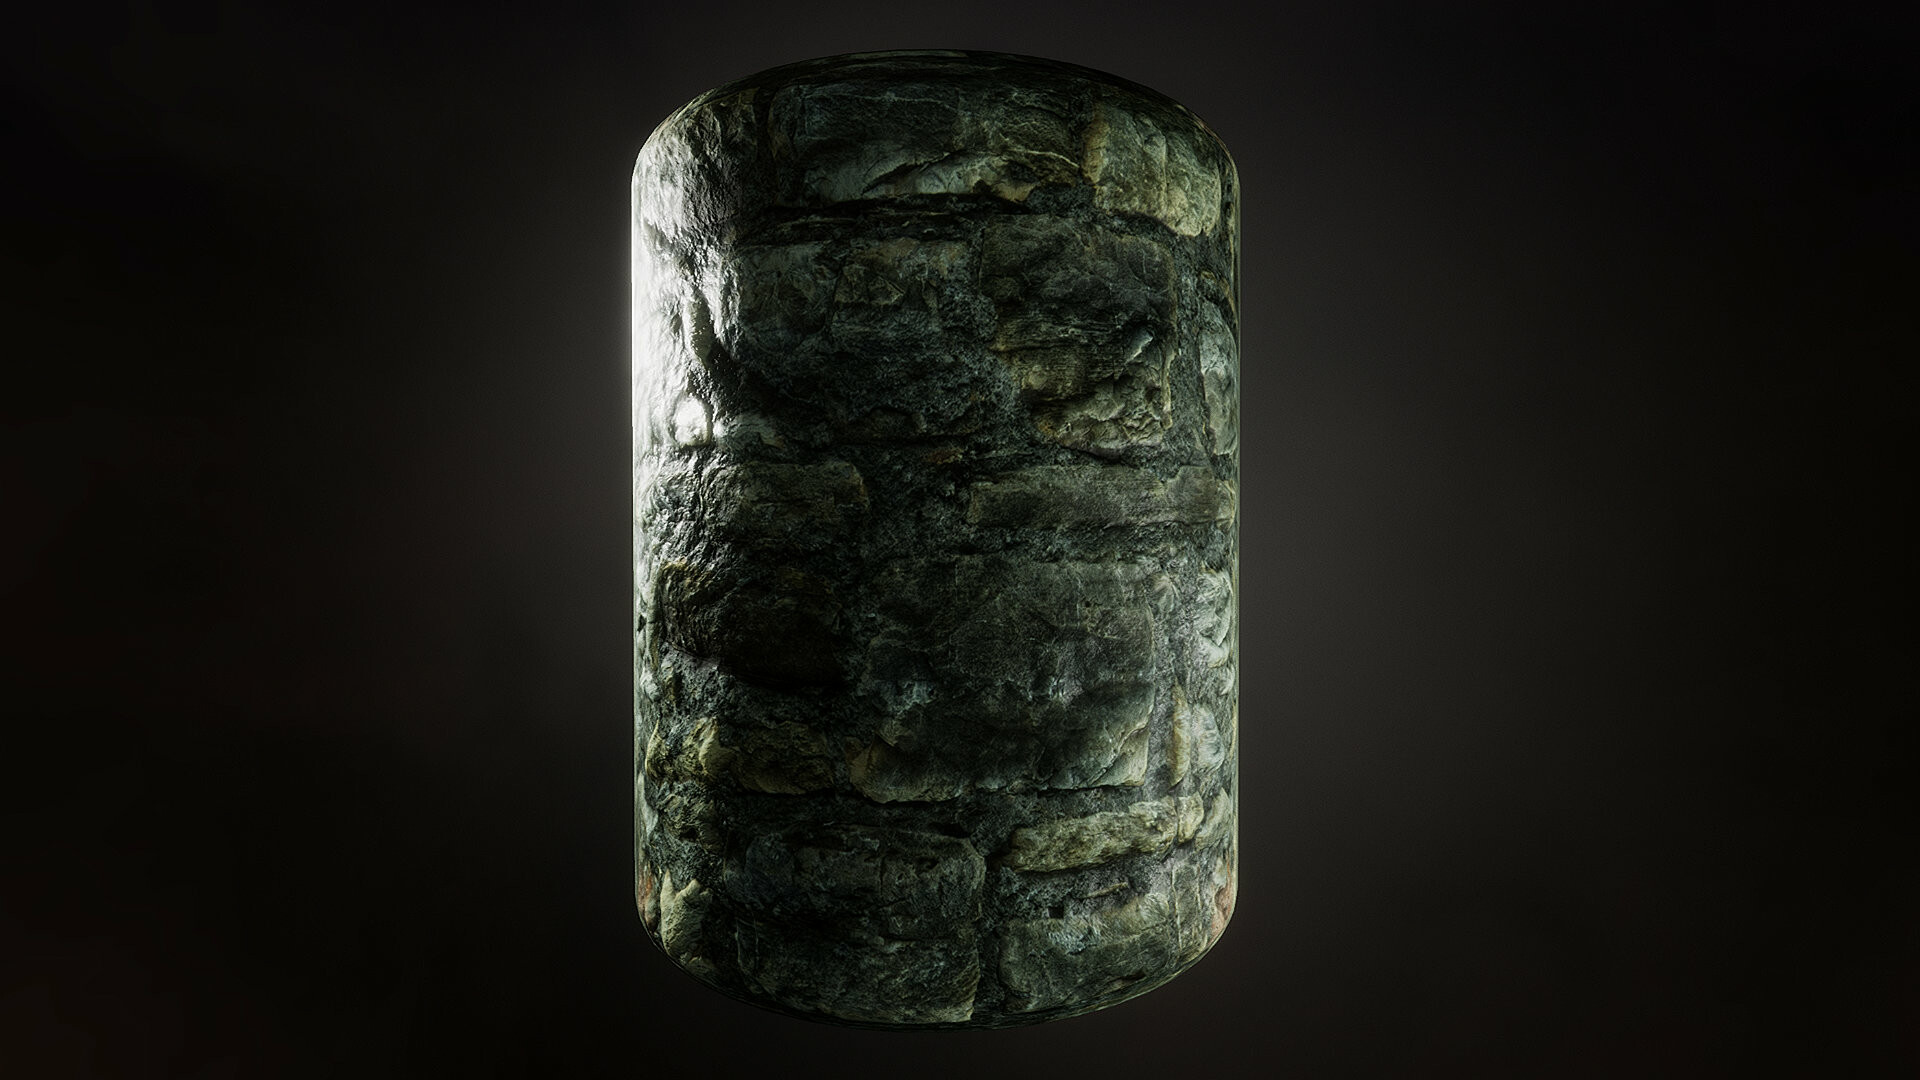 All Textures were made from photographs taken in Poland and Italy. Processed with Materialize, Quixel and Substance Painter.